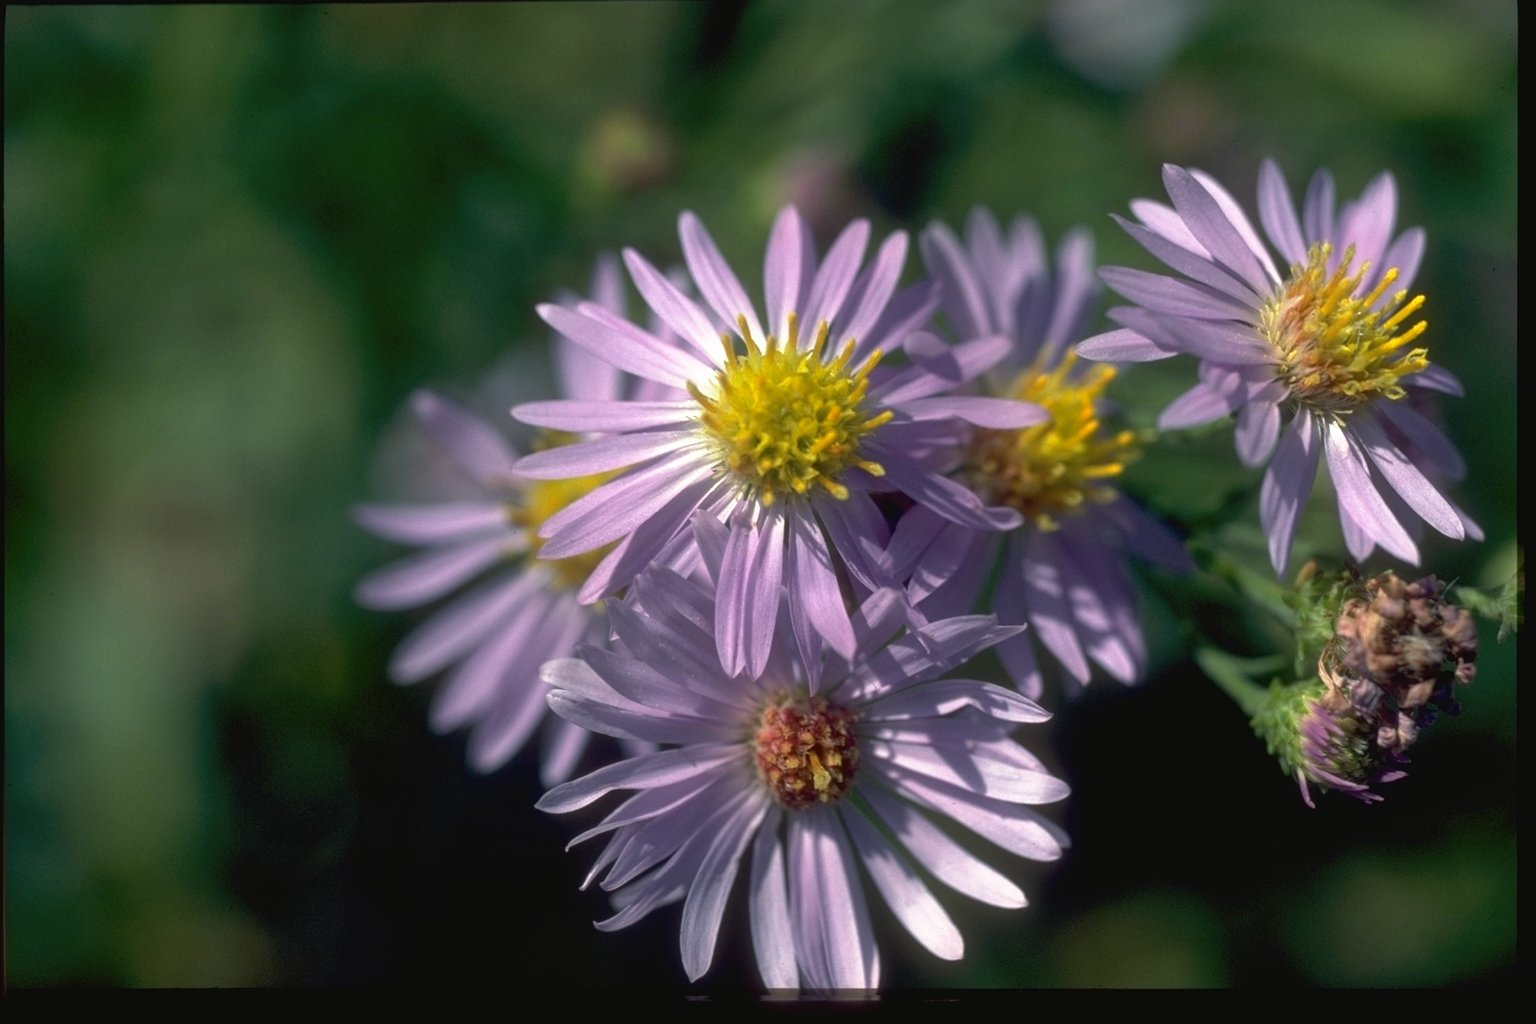 Forest Service Photo Of Purple Flowers With Yellow Centers